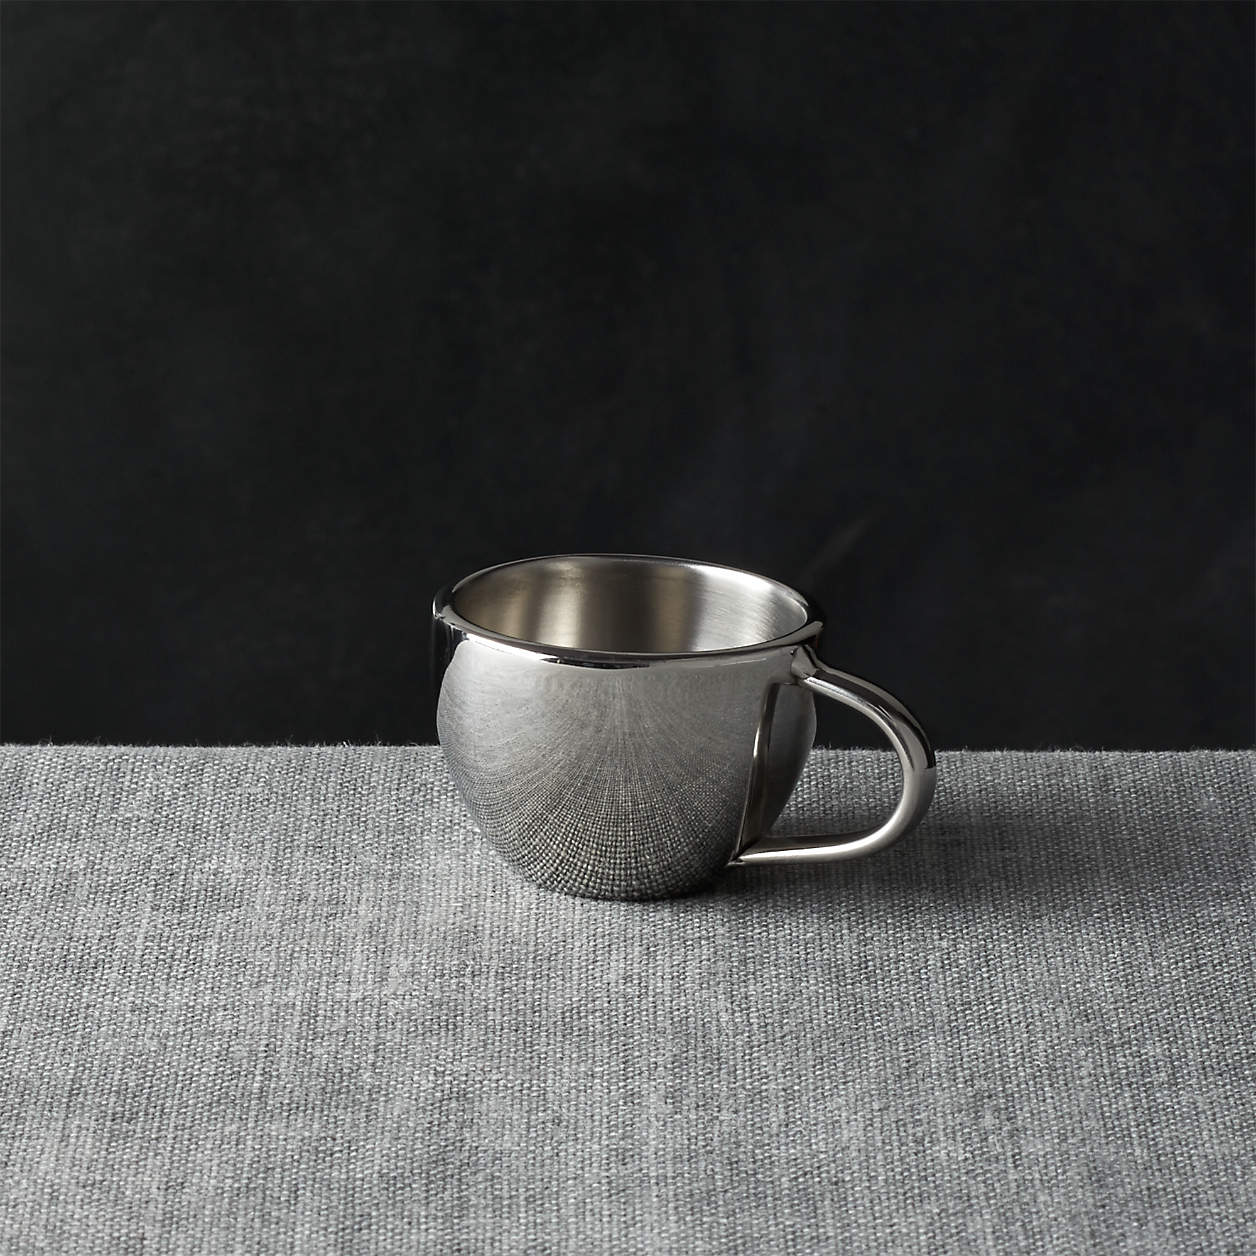 Craft & Barrel Stainless-Steel Espresso Cup